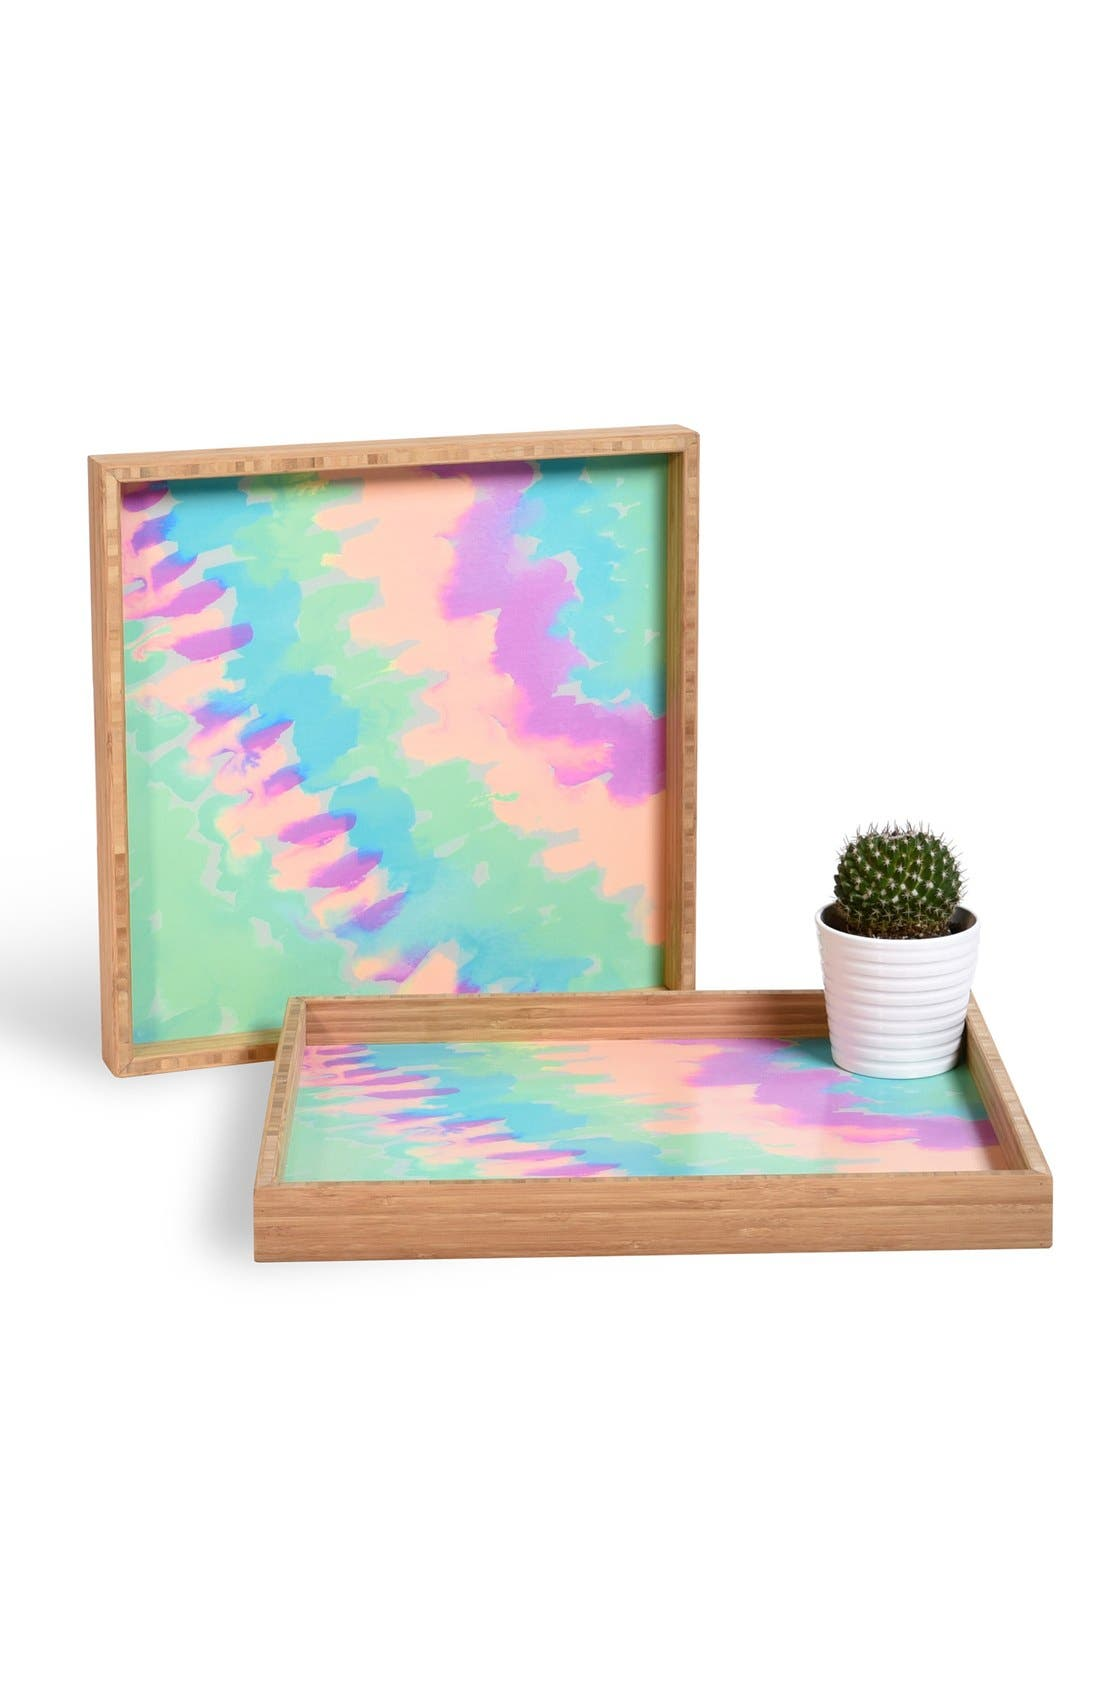 'Some Kind of Wonderful' Decorative Serving Tray,                             Main thumbnail 1, color,                             300